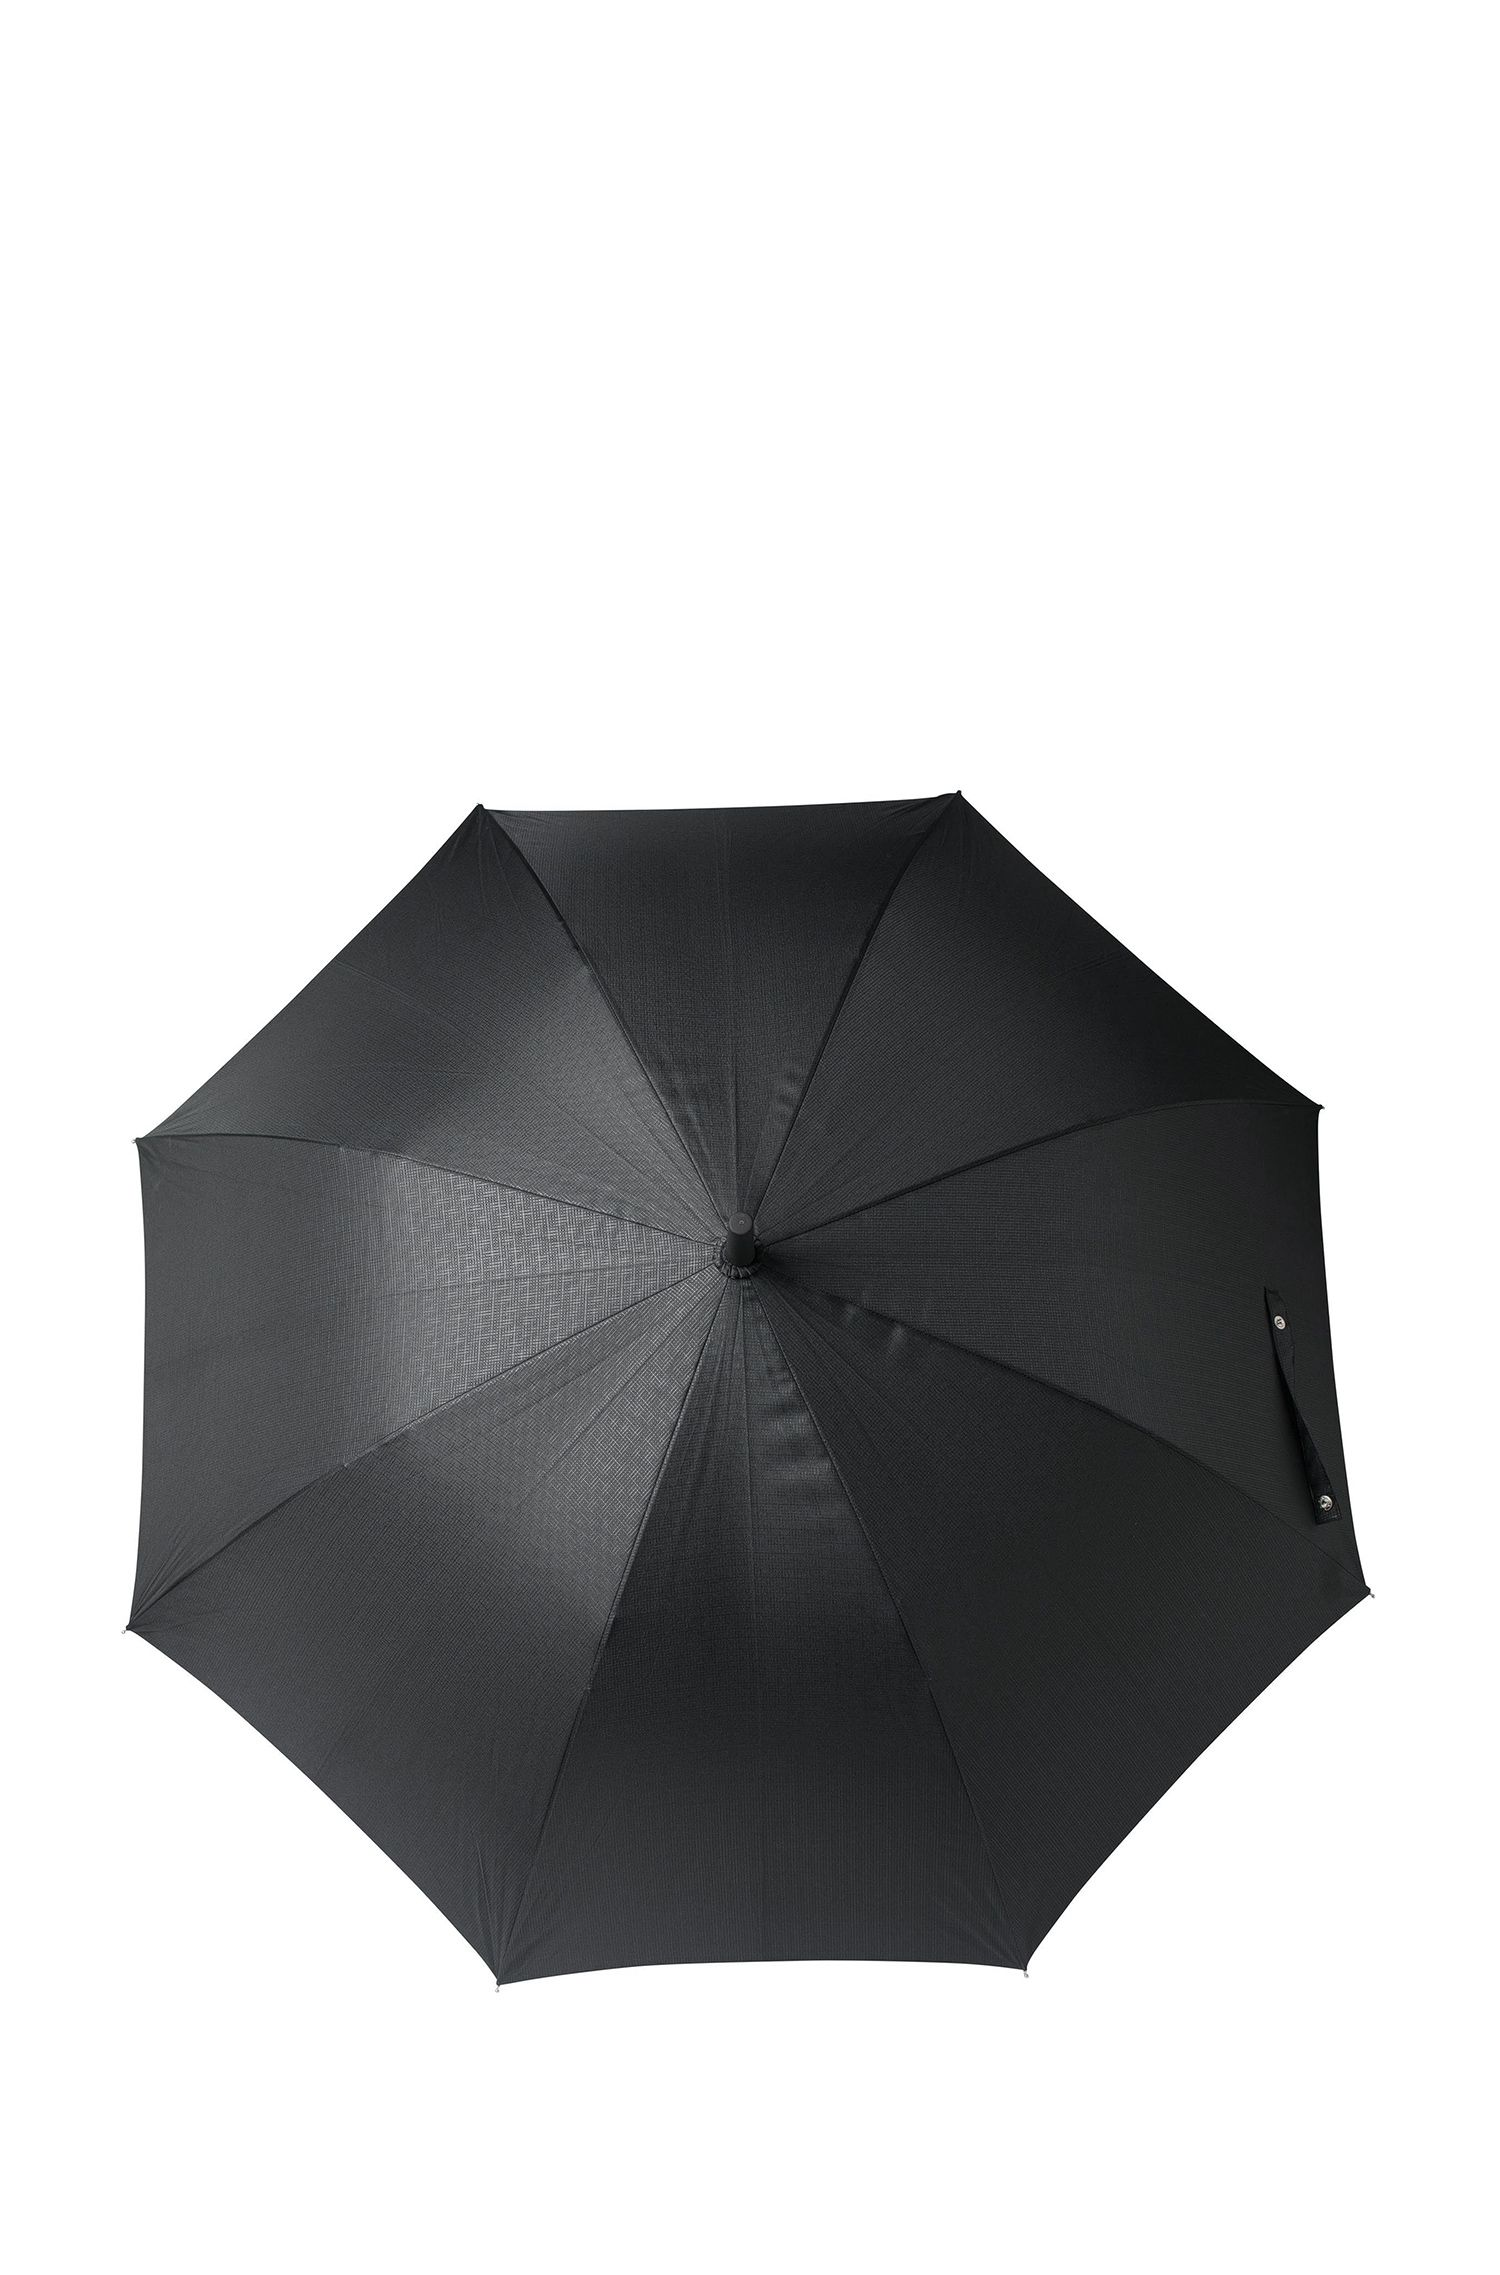 Black patterned golf umbrella with fibreglass frame